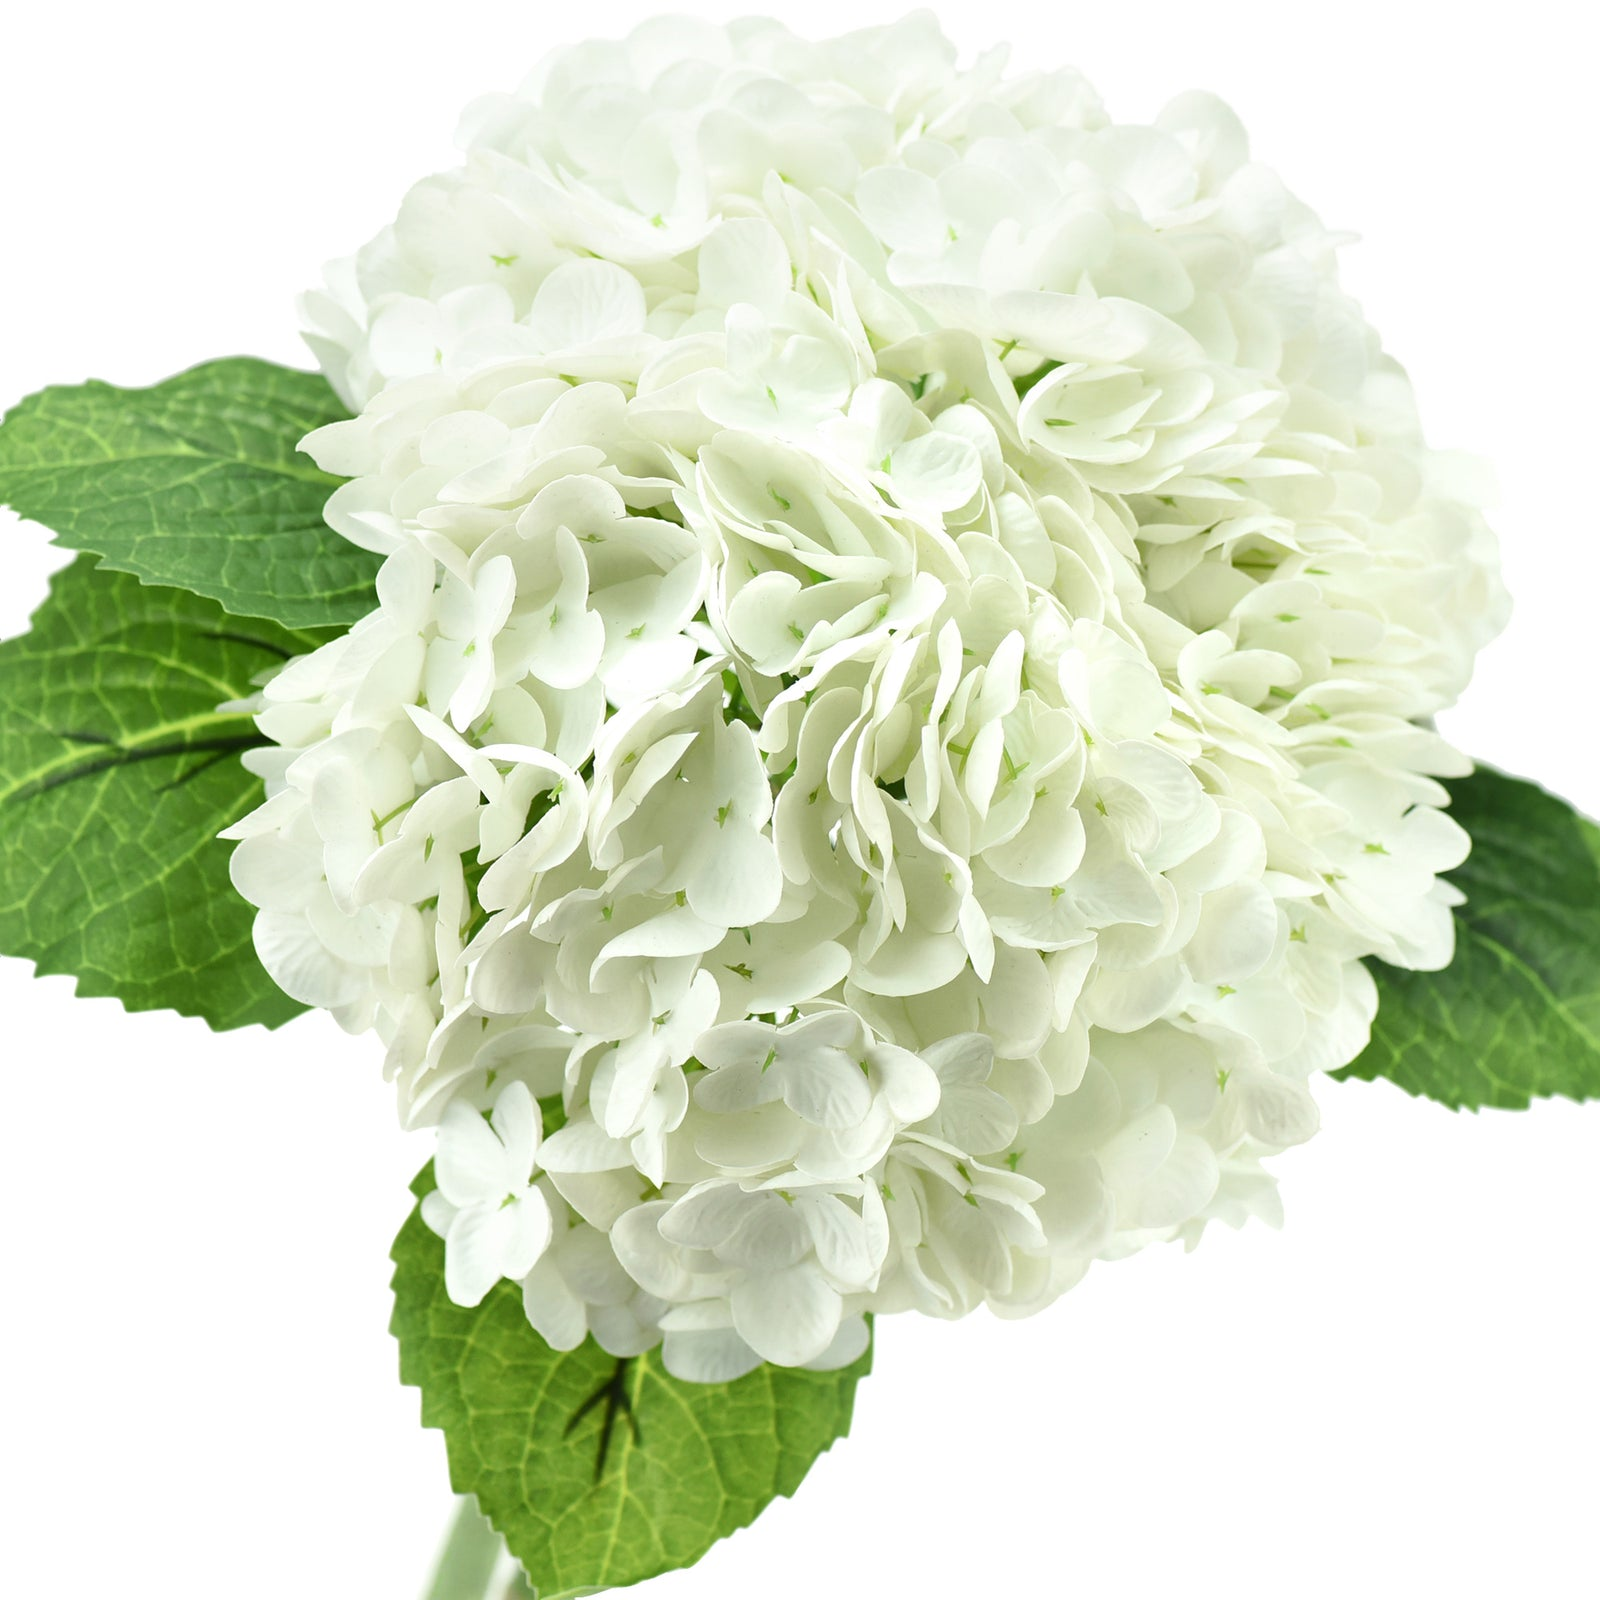 FiveSeasonStuff 2 Stems Real Touch Petals and Leaves Artificial Hydrangea Flowers Long Stem Floral Arrangement | for Wedding Bridal Party Home Décor DIY Floral Decoration (White)